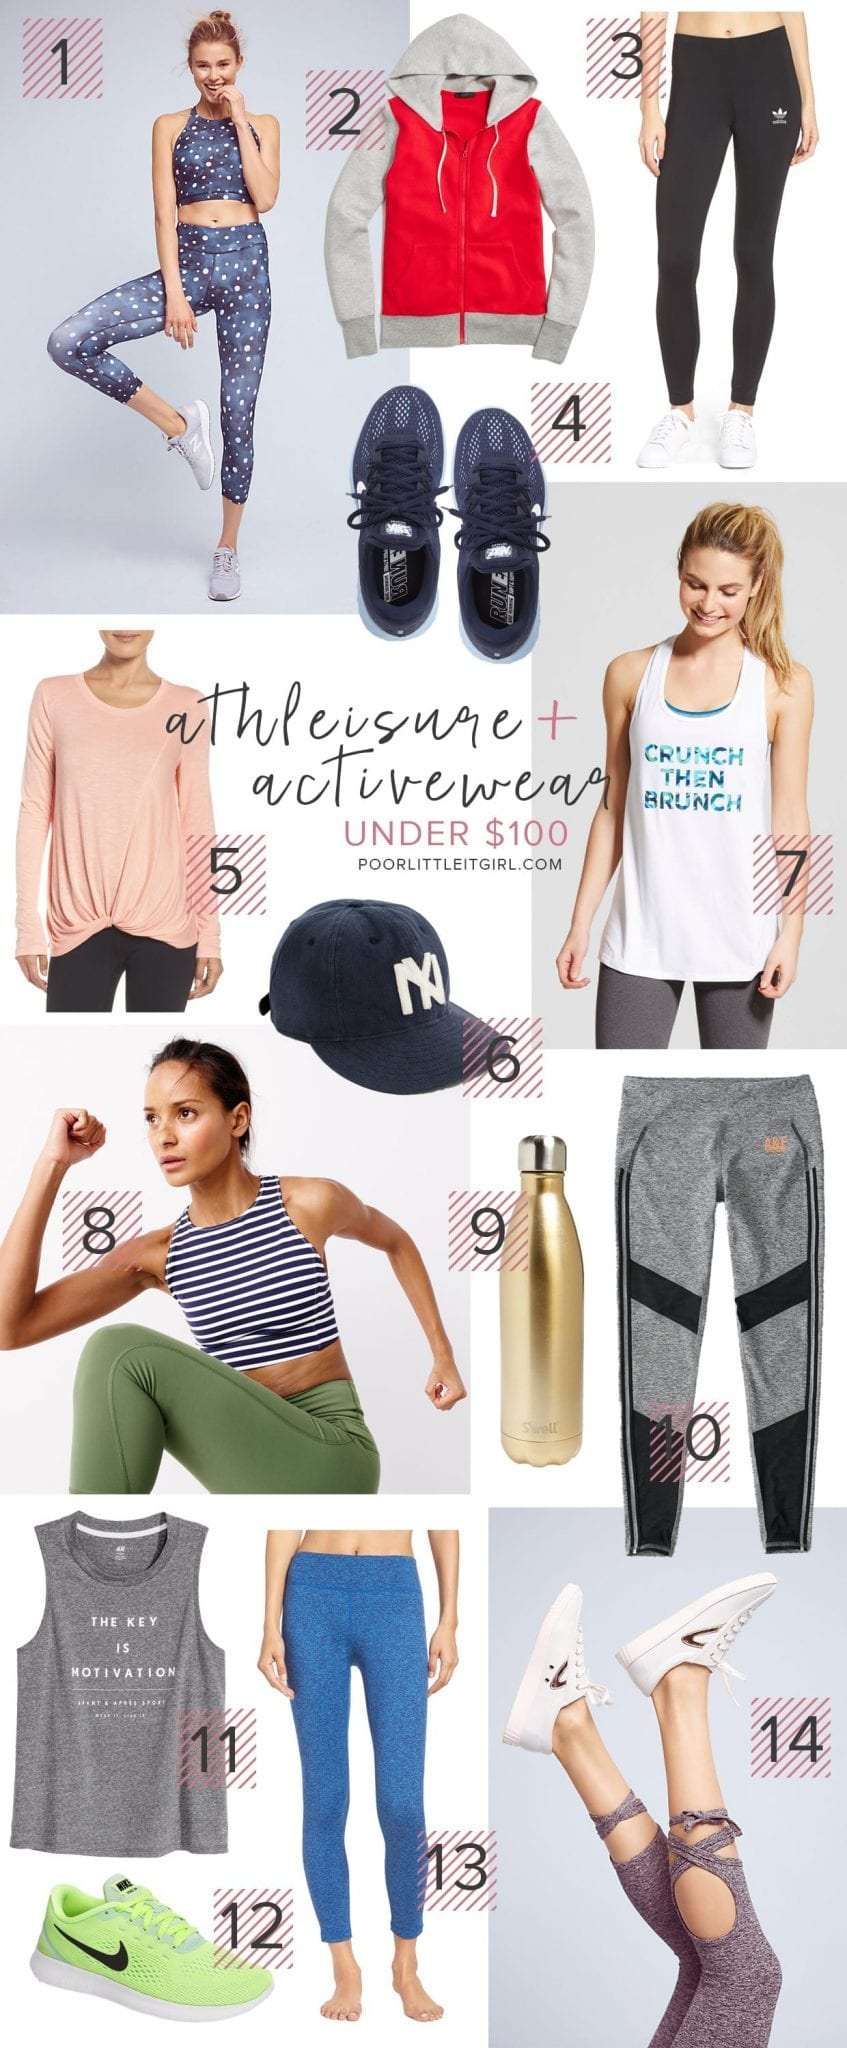 The Best Athleisure and Activewear Under $100 - Poor Little It Girl